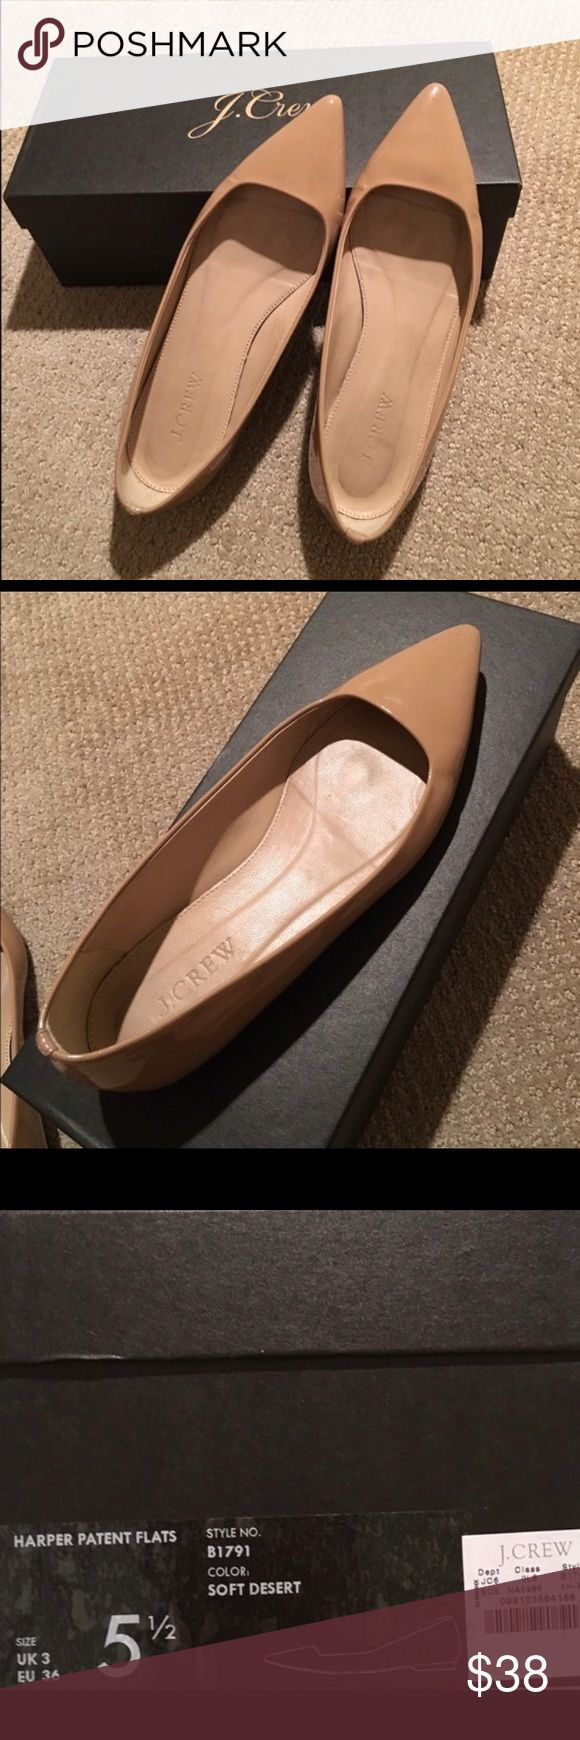 Harper J Crew flats Super cute nude patent J Crew Harper flat. Stylish pointed toe. Size 5.5. J. Crew Shoes Flats & Loafers